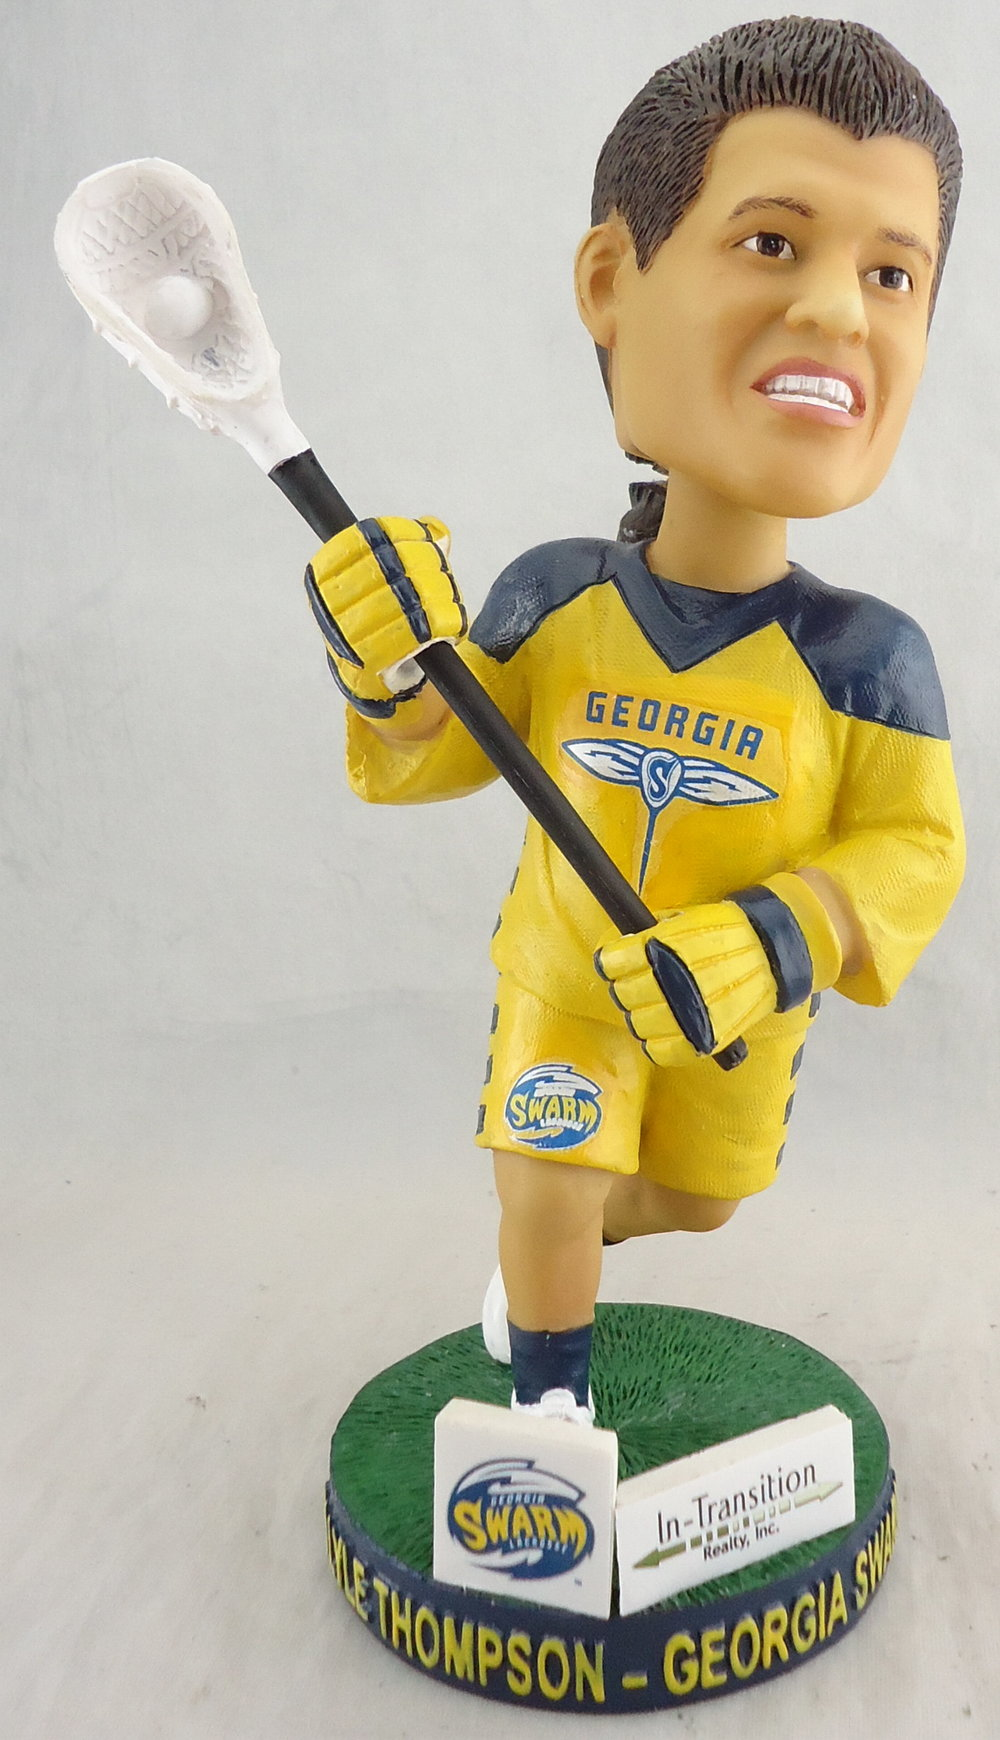 Georgia Swarm - Lyle Thompson 111873, 7inch Bobble Ponytail and Bobblehead, (1).jpg